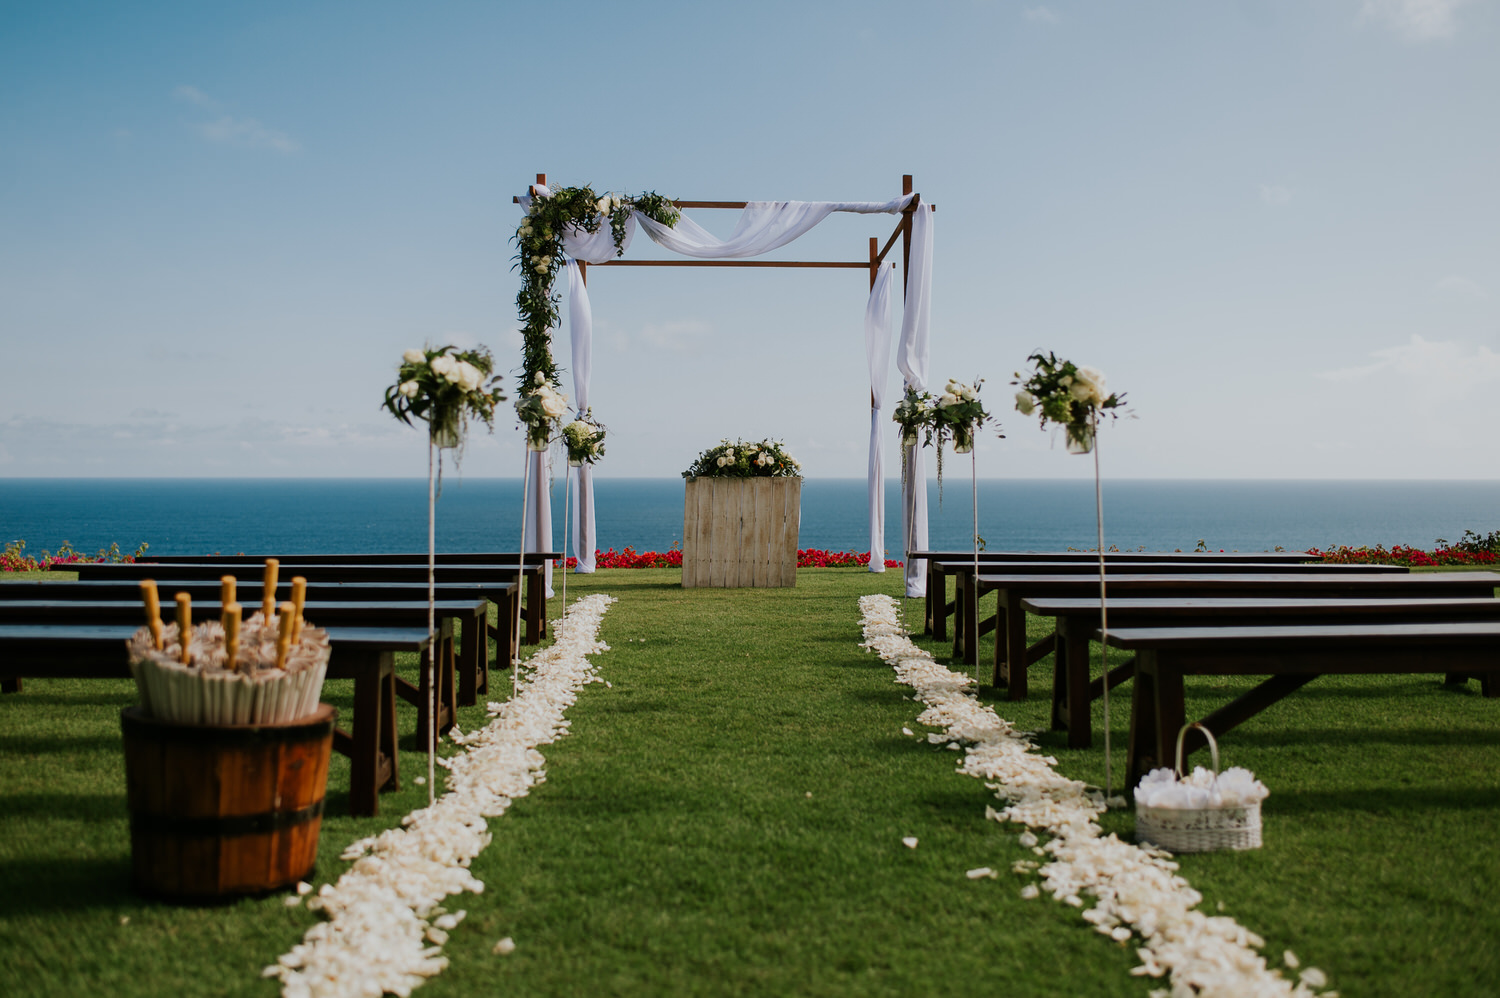 bali wedding destination - the ungasan wedding - bali wedding photographer - diktatphotography - aimee + blake wedding - 31